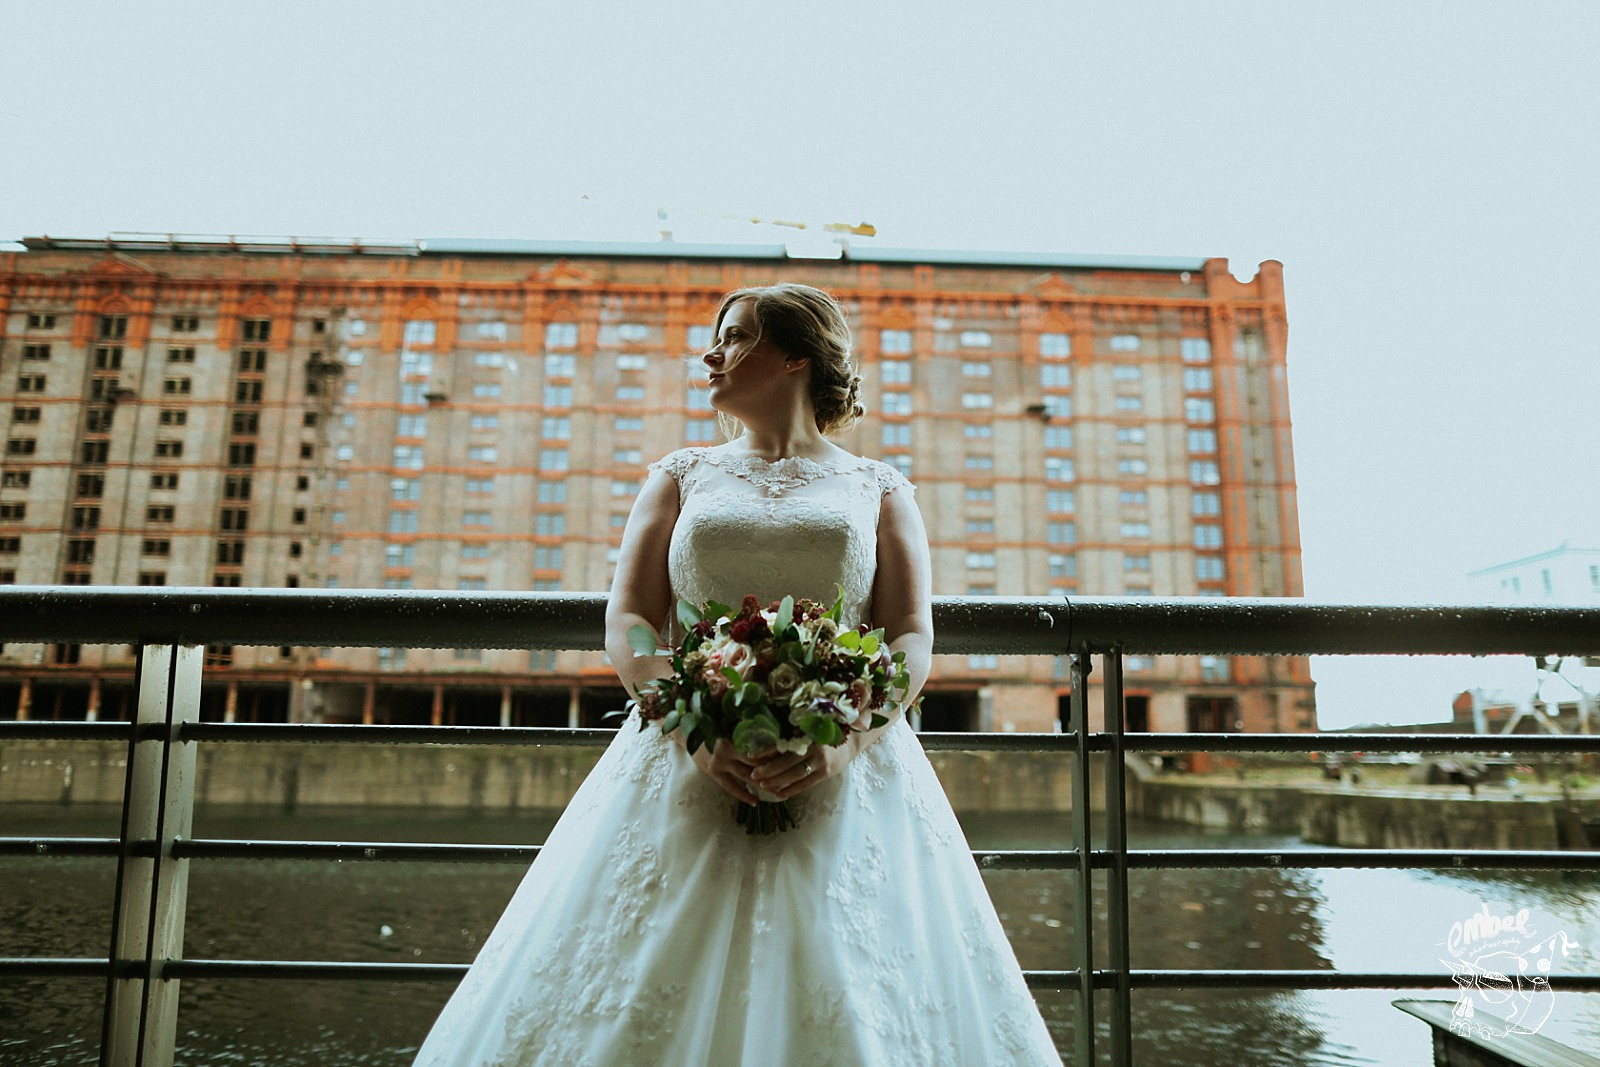 brides portrait with big industrial warehouse behing her